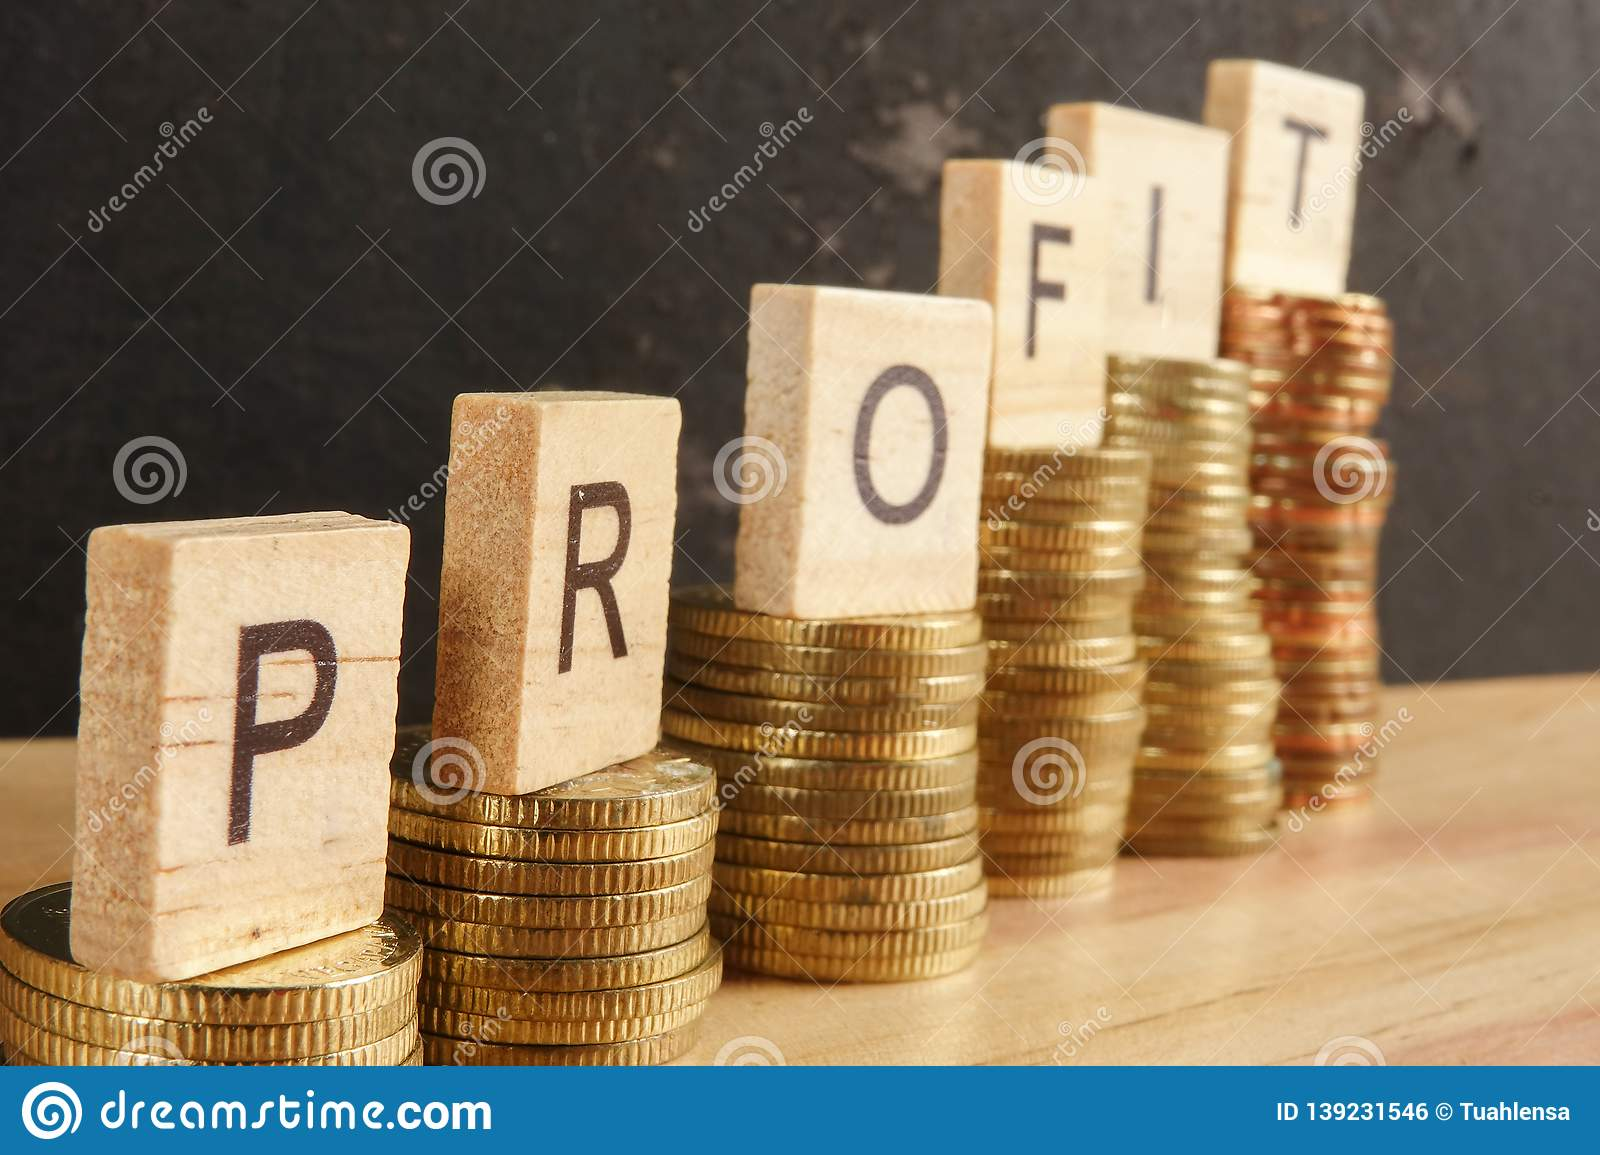 Business concept with PROFIT word on wooden plate onto hike trend stacked of coins.